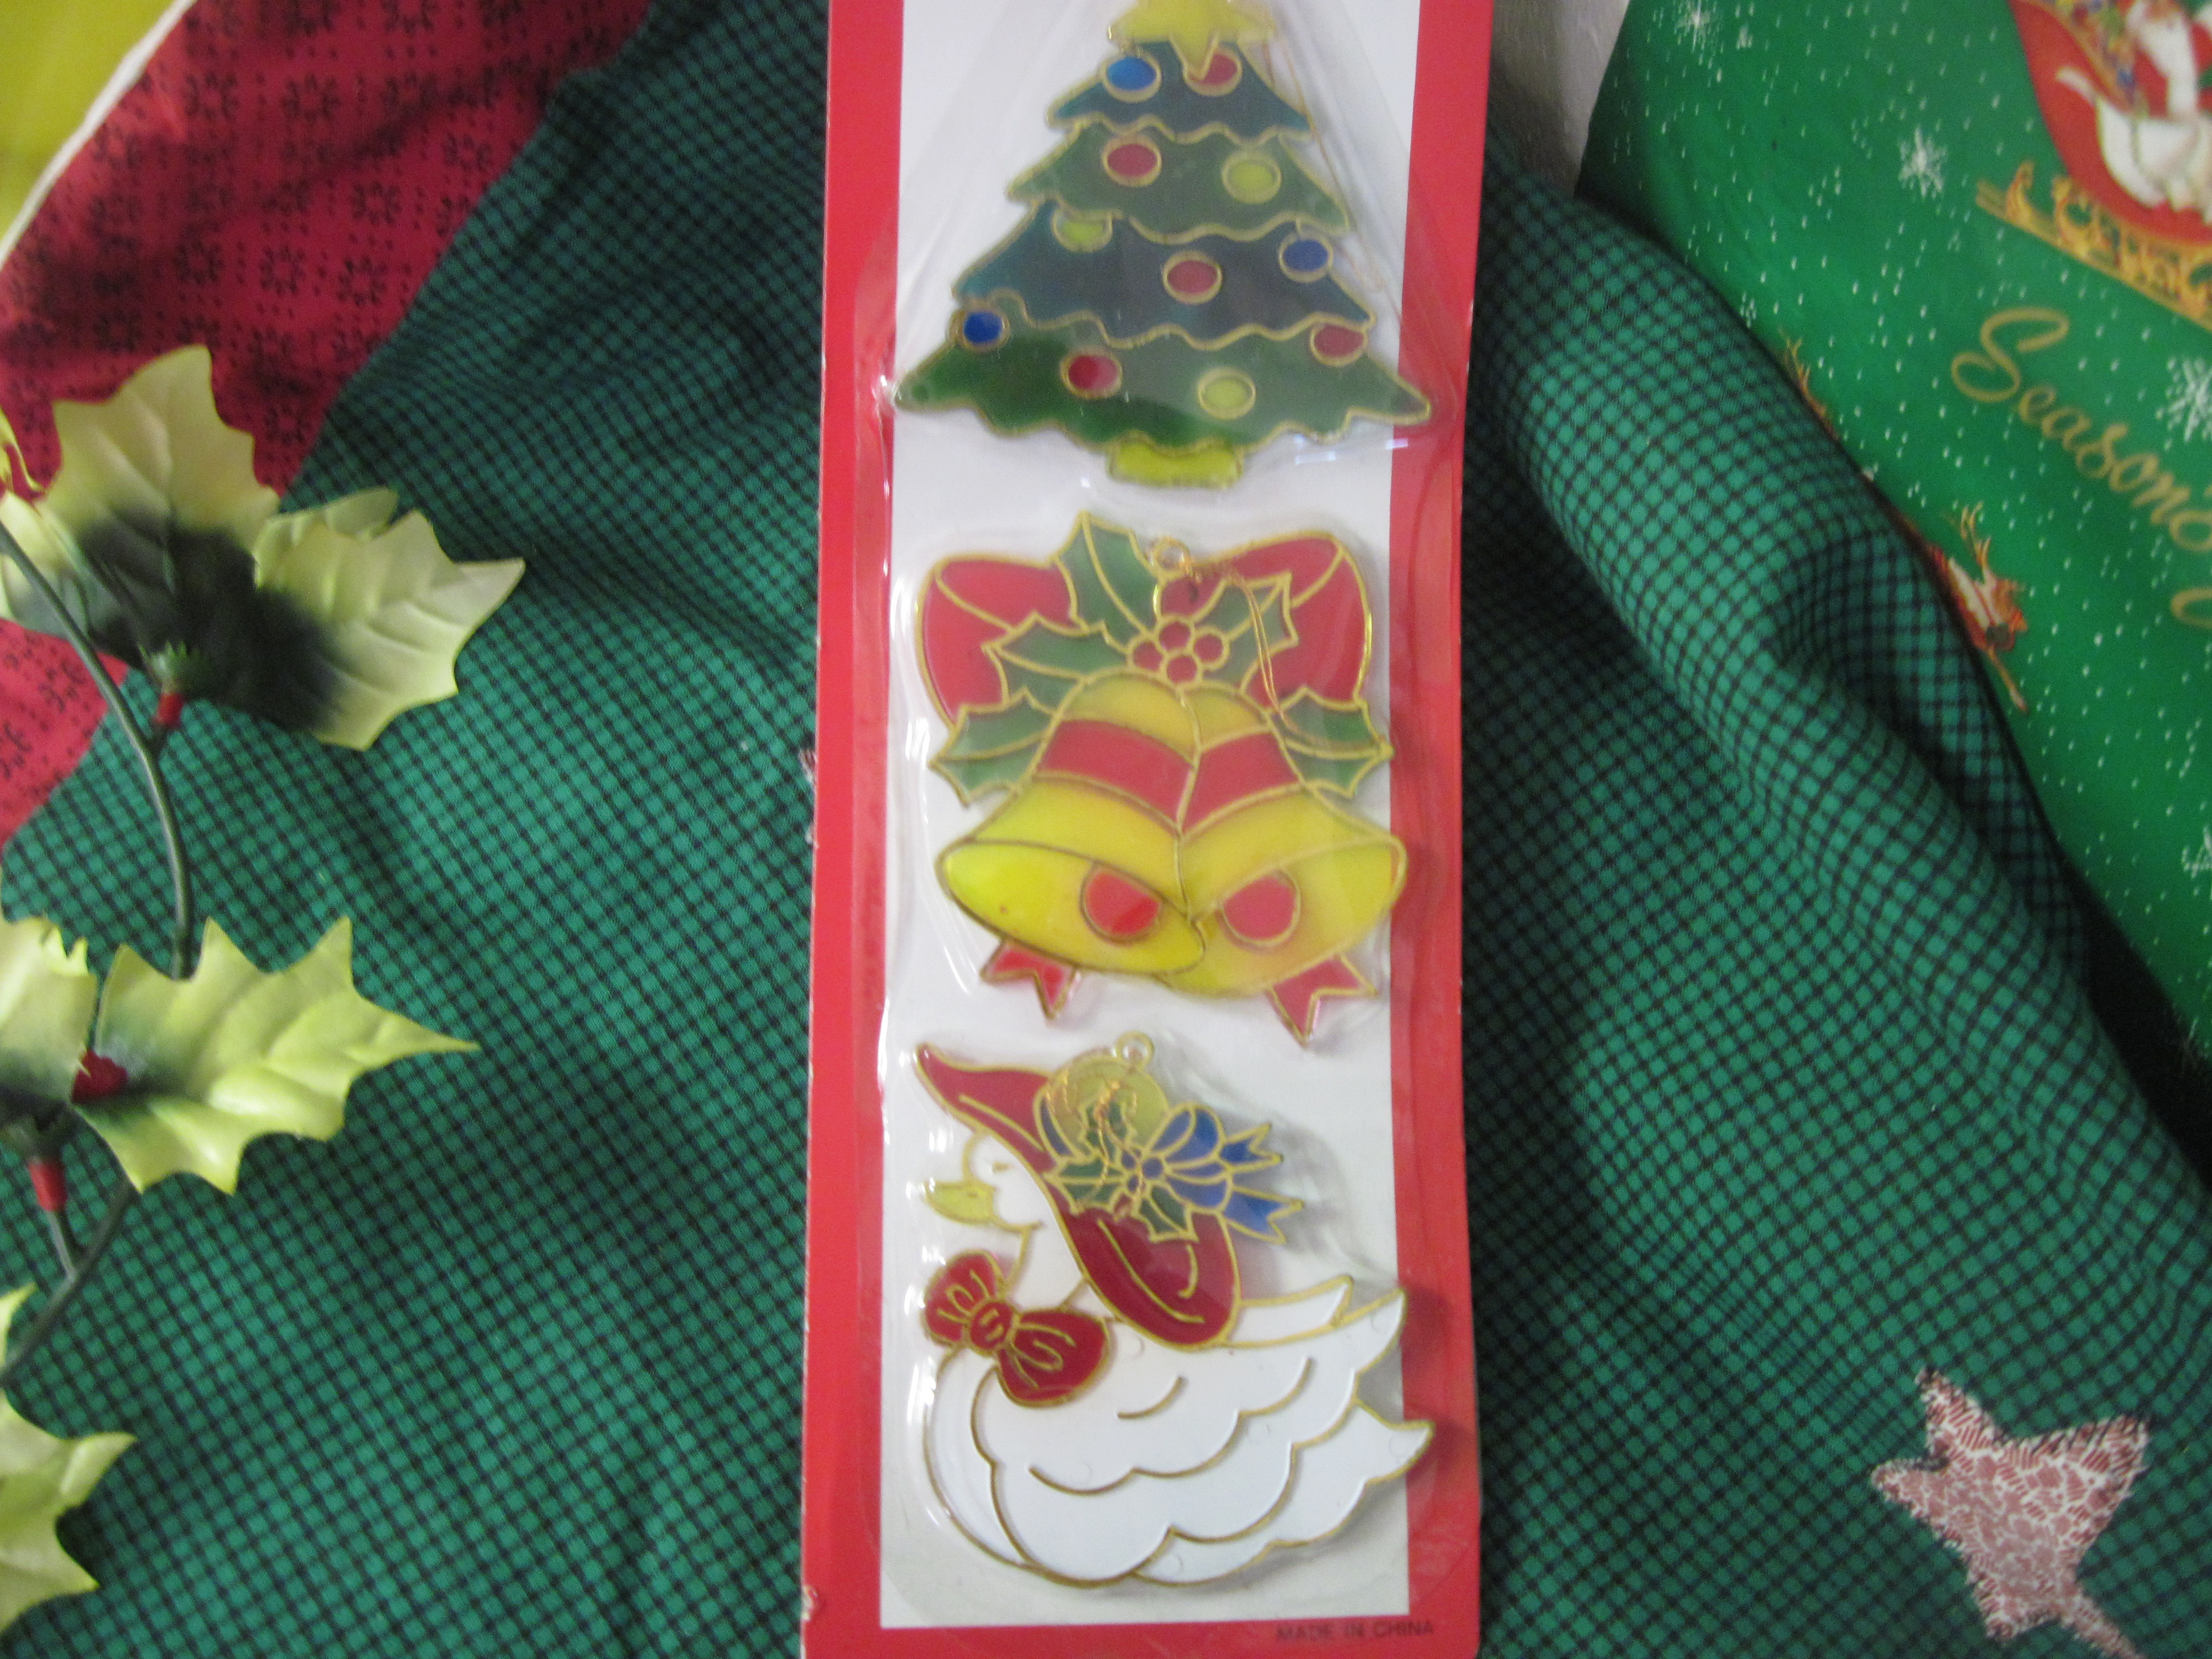 Set of 3 Christmas Tree Ornaments - Tree,Bells,Goose